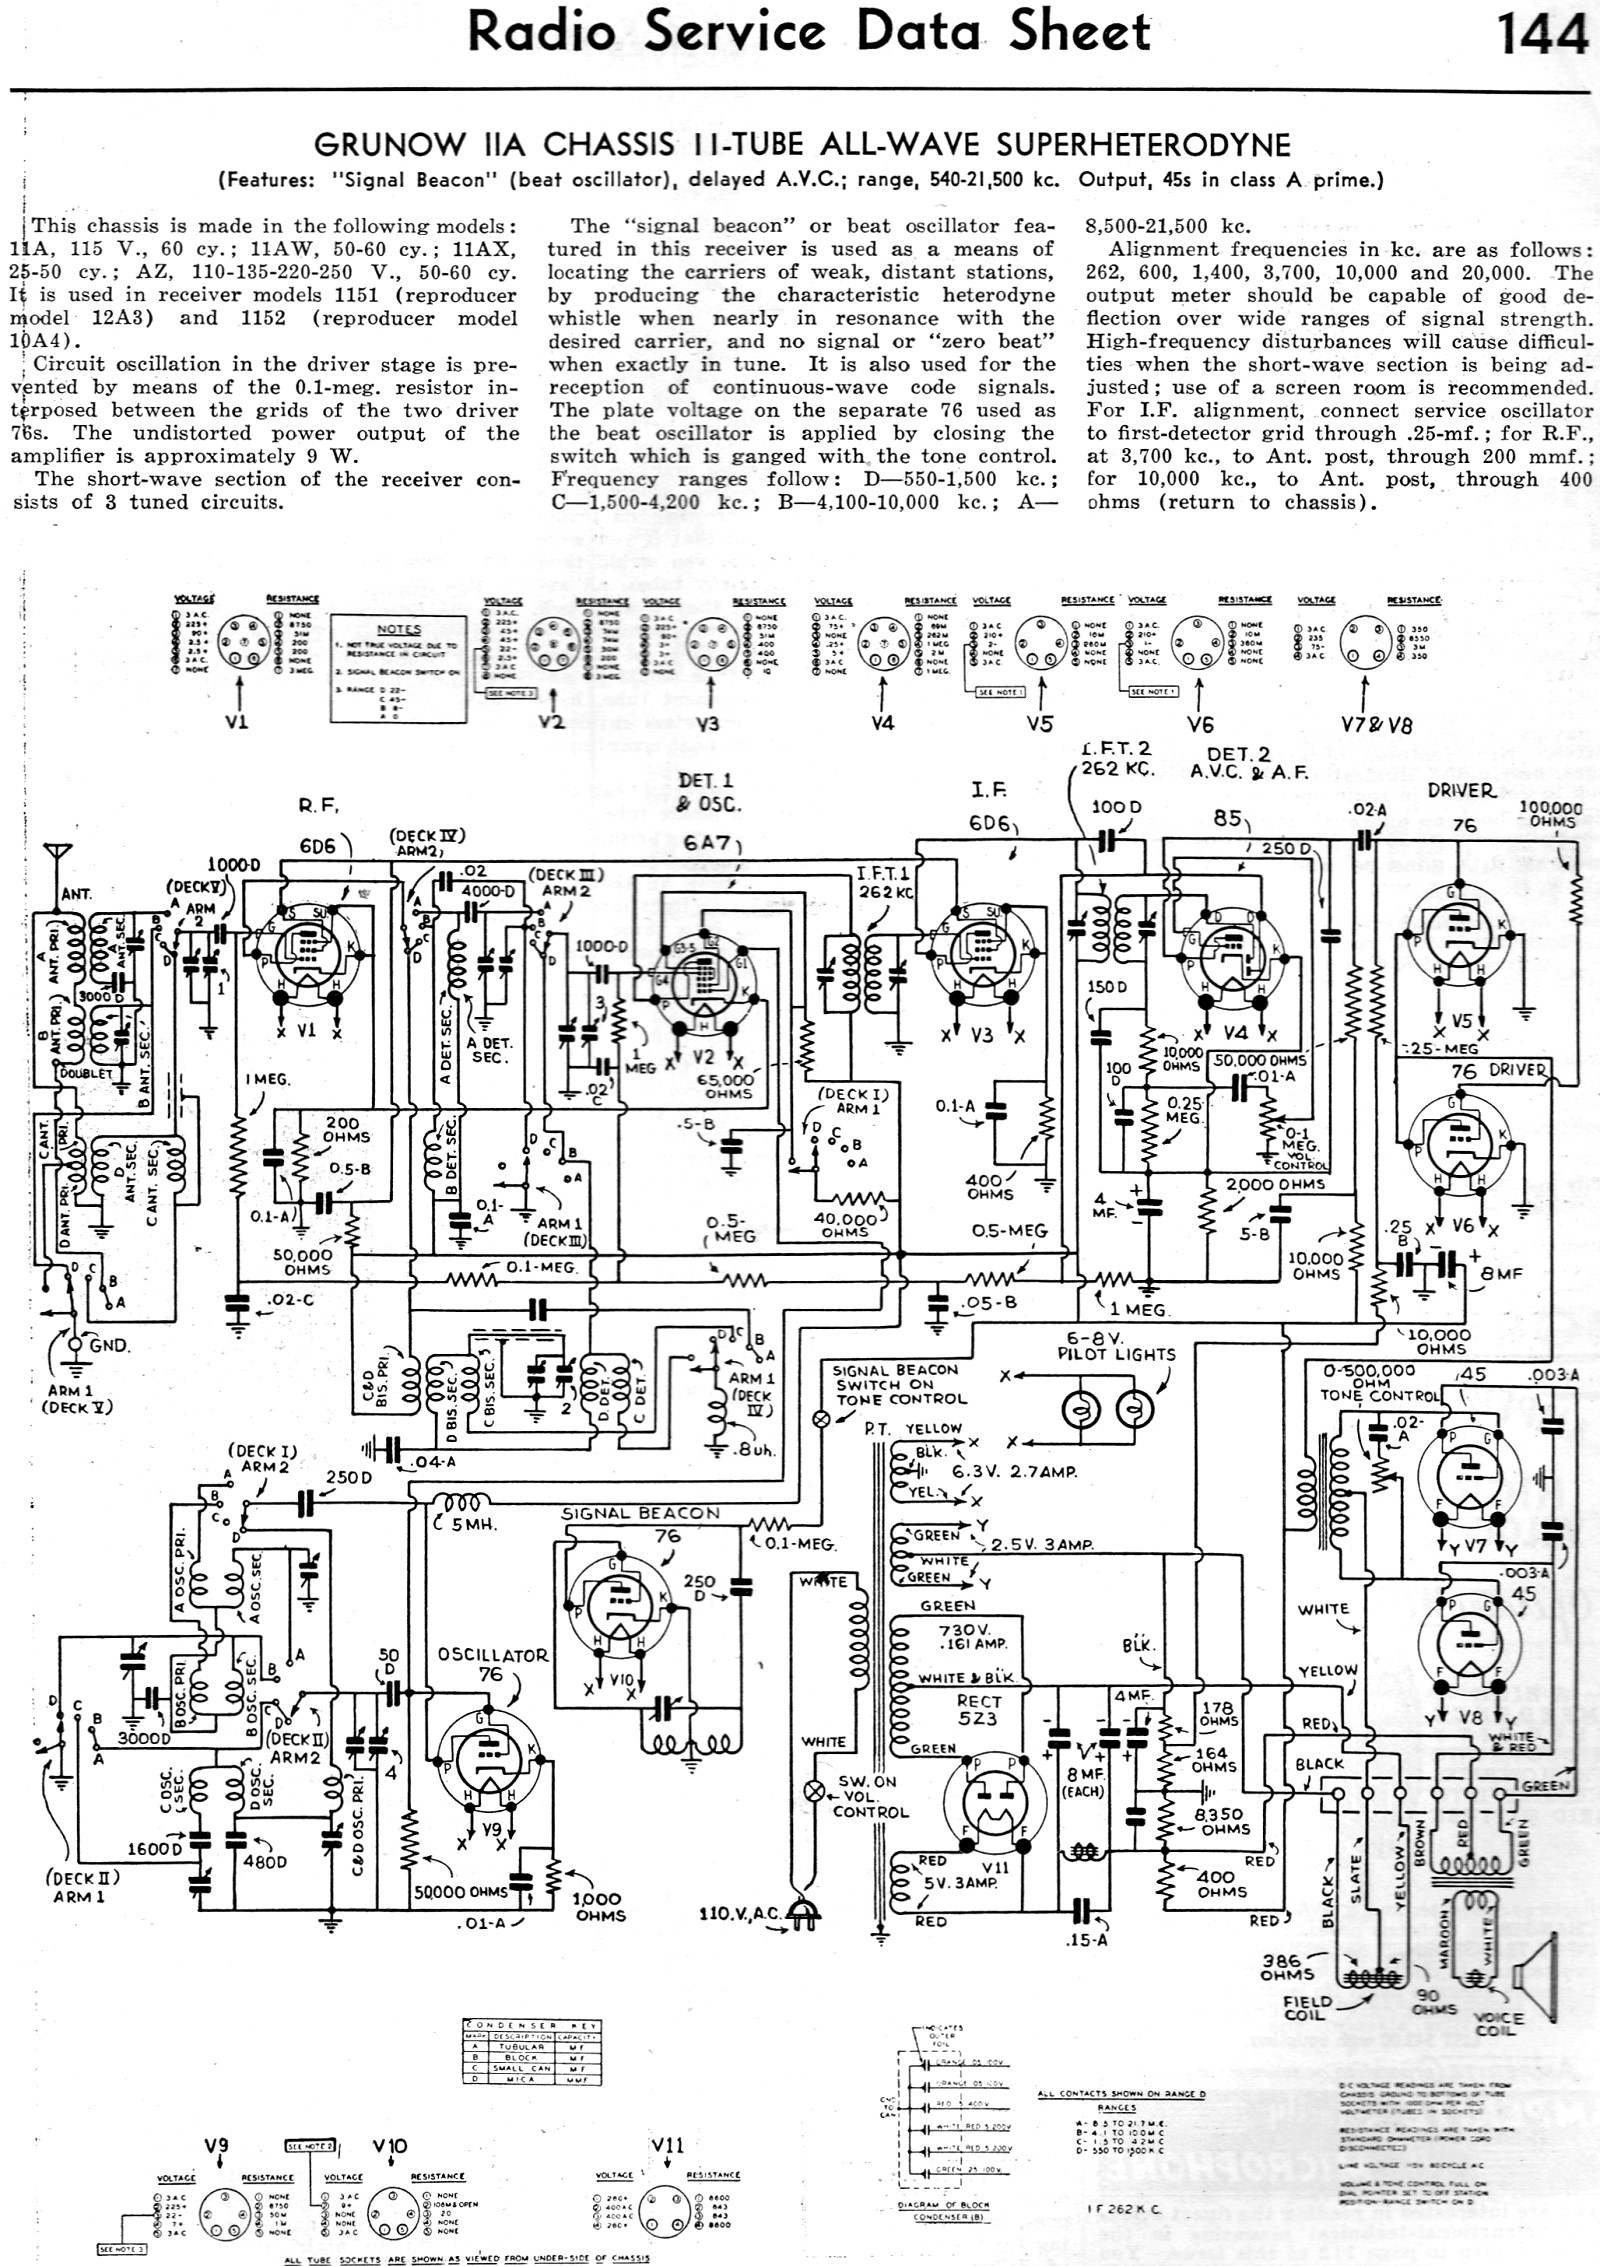 Grunow 11a Chassis 11tube Allwave Superheterodyne Radio Service. Grunow 11a Chassis 11tube Allwave Superheterodyne Radio Service Data Sheet. Wiring. Zenith Tube Radio Schematics 39a At Scoala.co